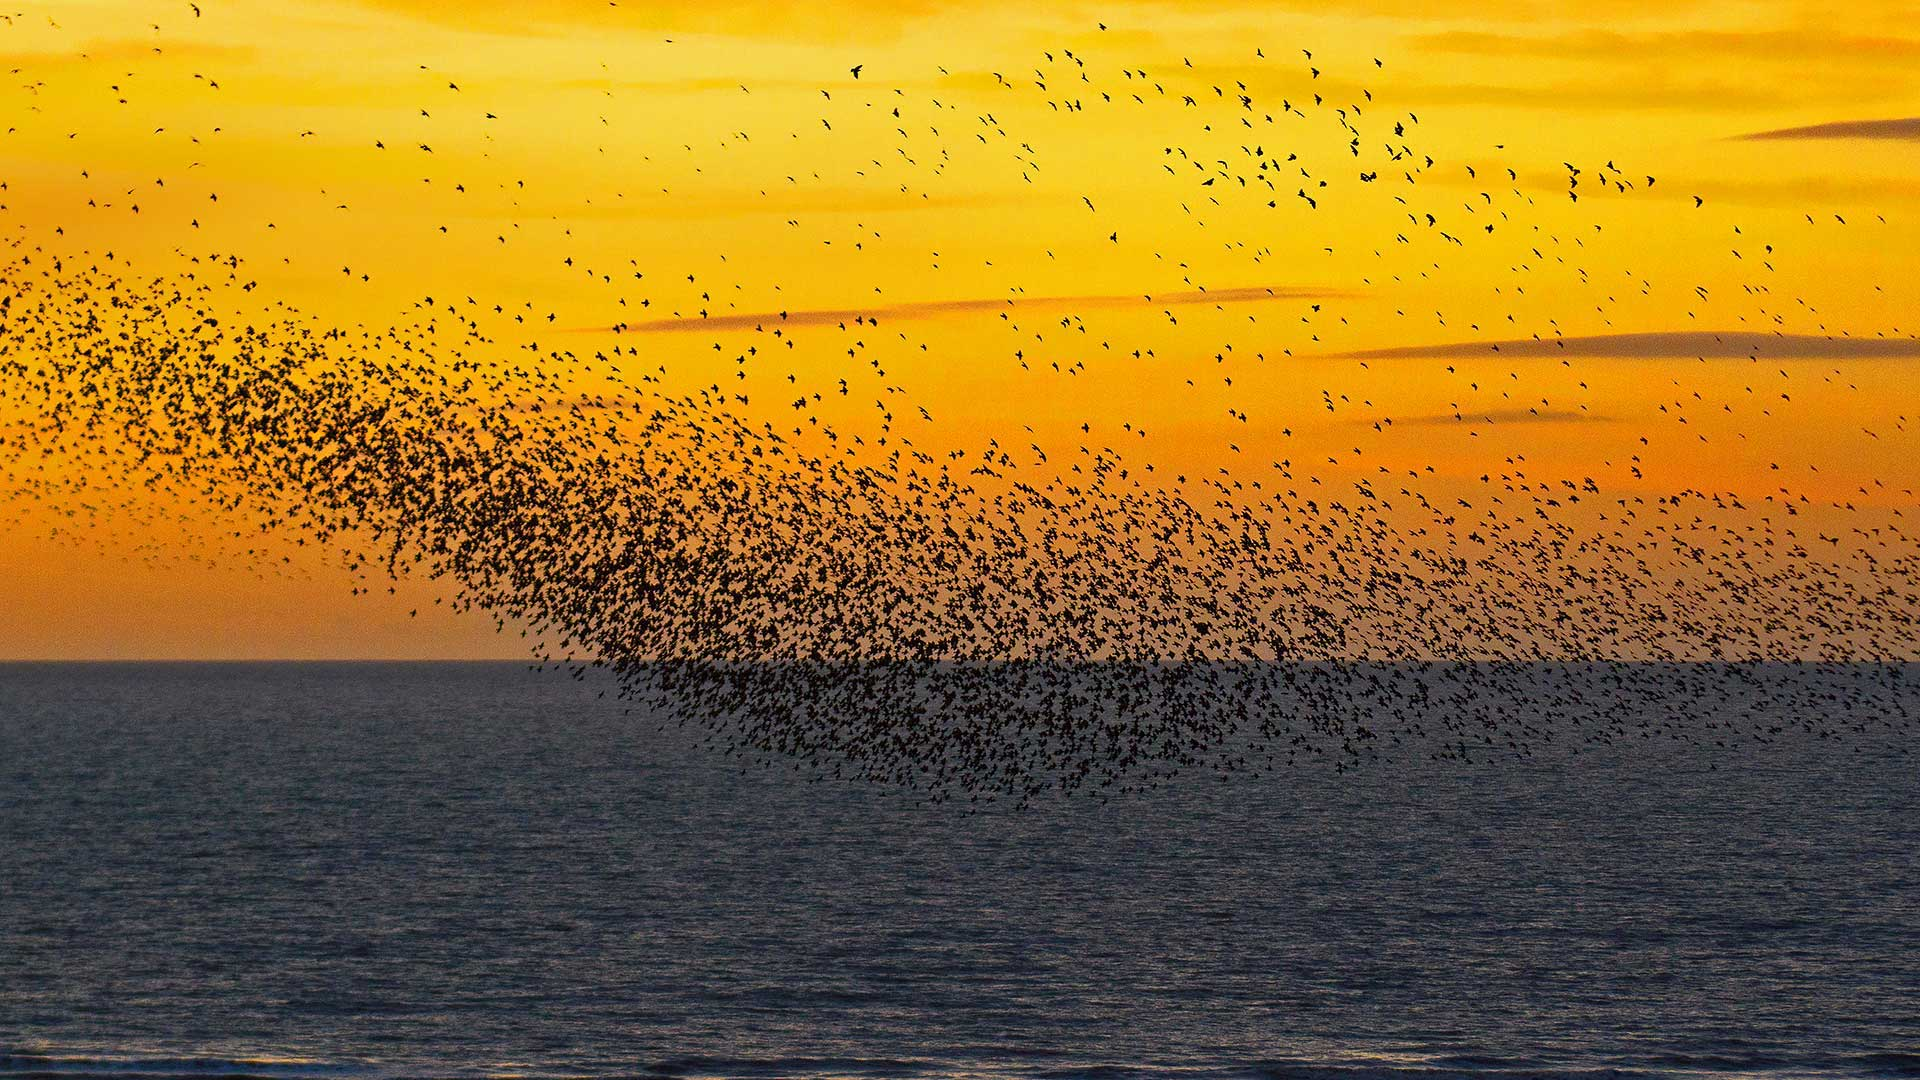 Starlings at sunset in Blackpool, England (© Mediaworld Images/Alamy)(Bing United States)